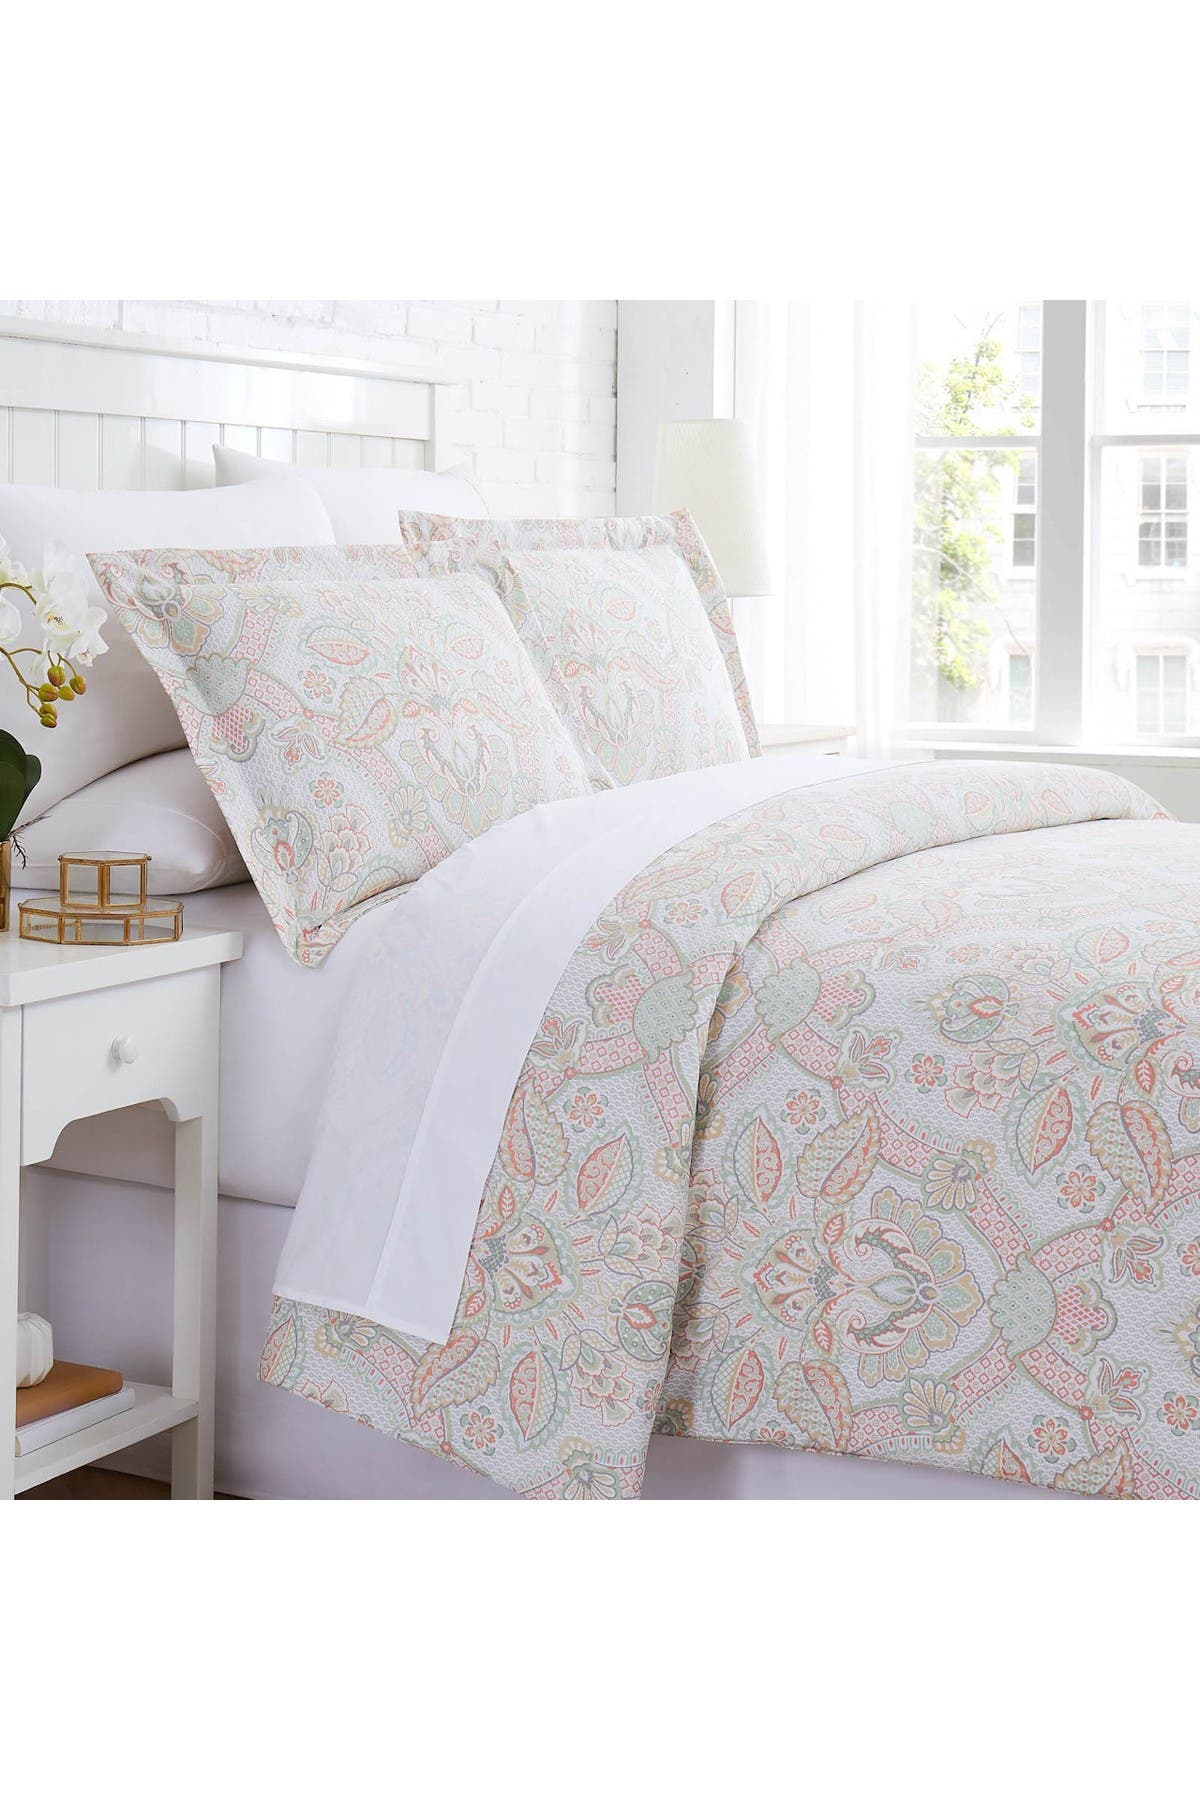 Image of SOUTHSHORE FINE LINENS Enchantment Duvet Cover Set - Coral - King/California King